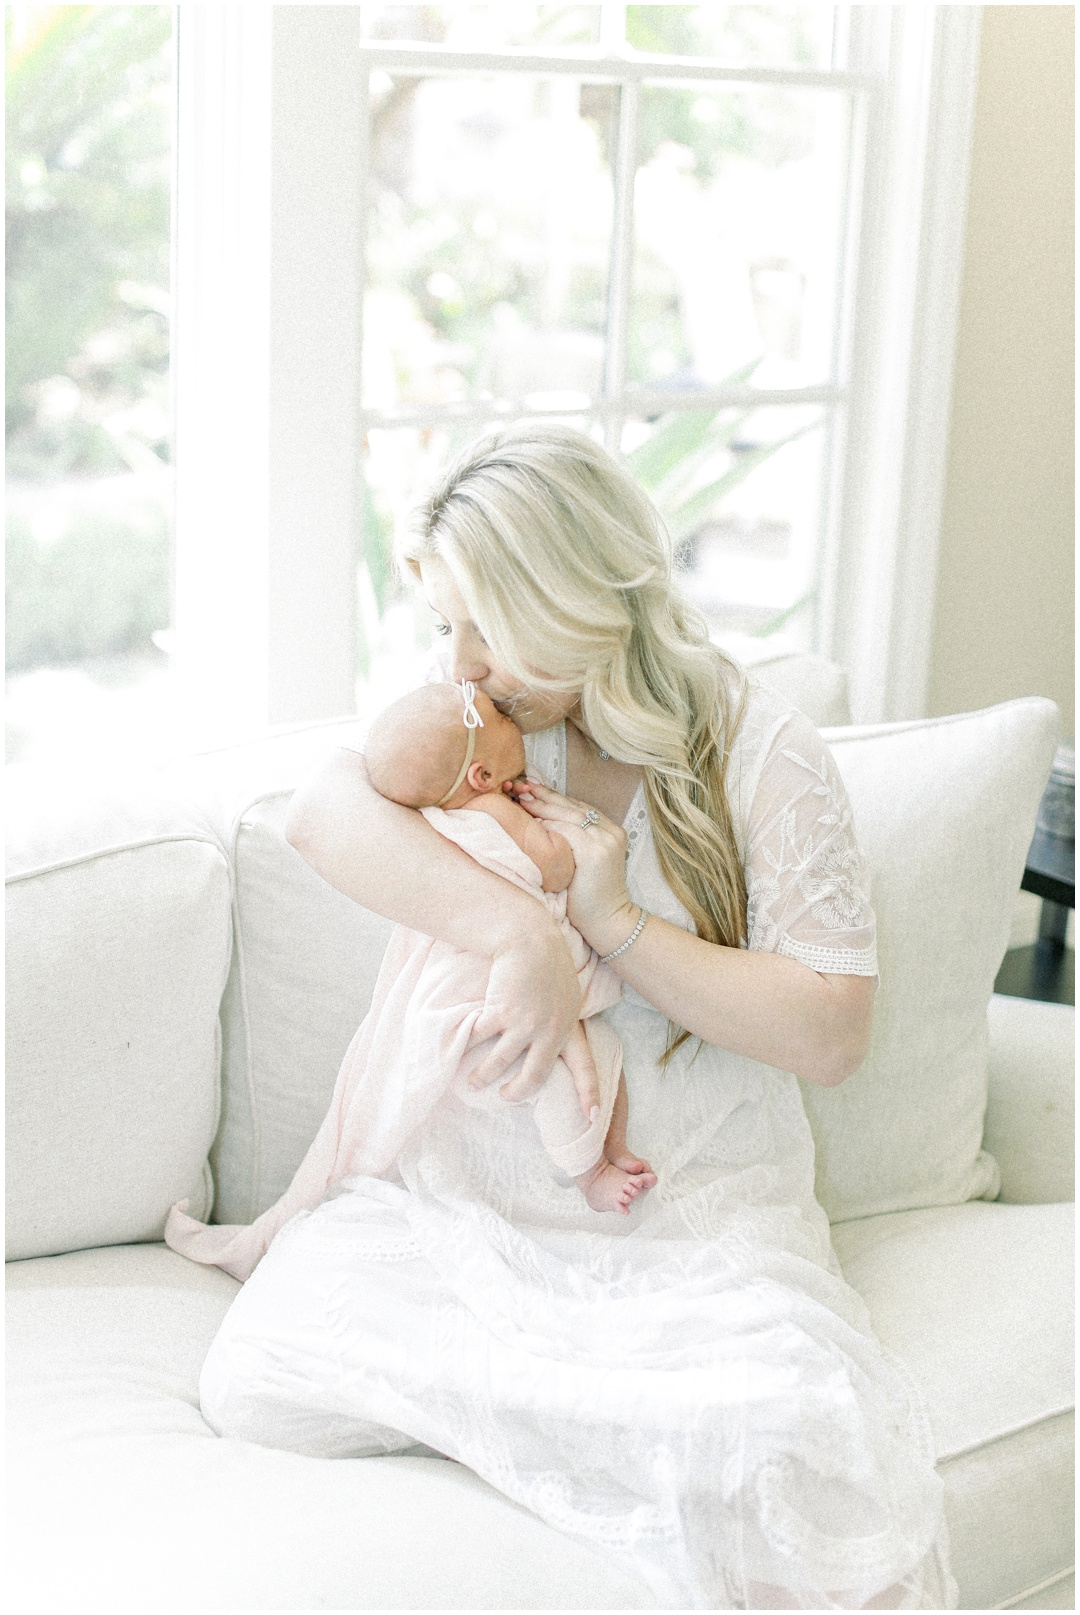 Newport_Beach_Newborn_Light_Airy_Natural_Photographer_Newport_Beach_Photographer_Orange_County_Family_Photographer_Cori_Kleckner_Photography_Newport_Beach_Photographer_newborn_kole_calhoun56_kole_calhoun_Jennifer_Calhoun_Knox_Calhoun_3773.jpg